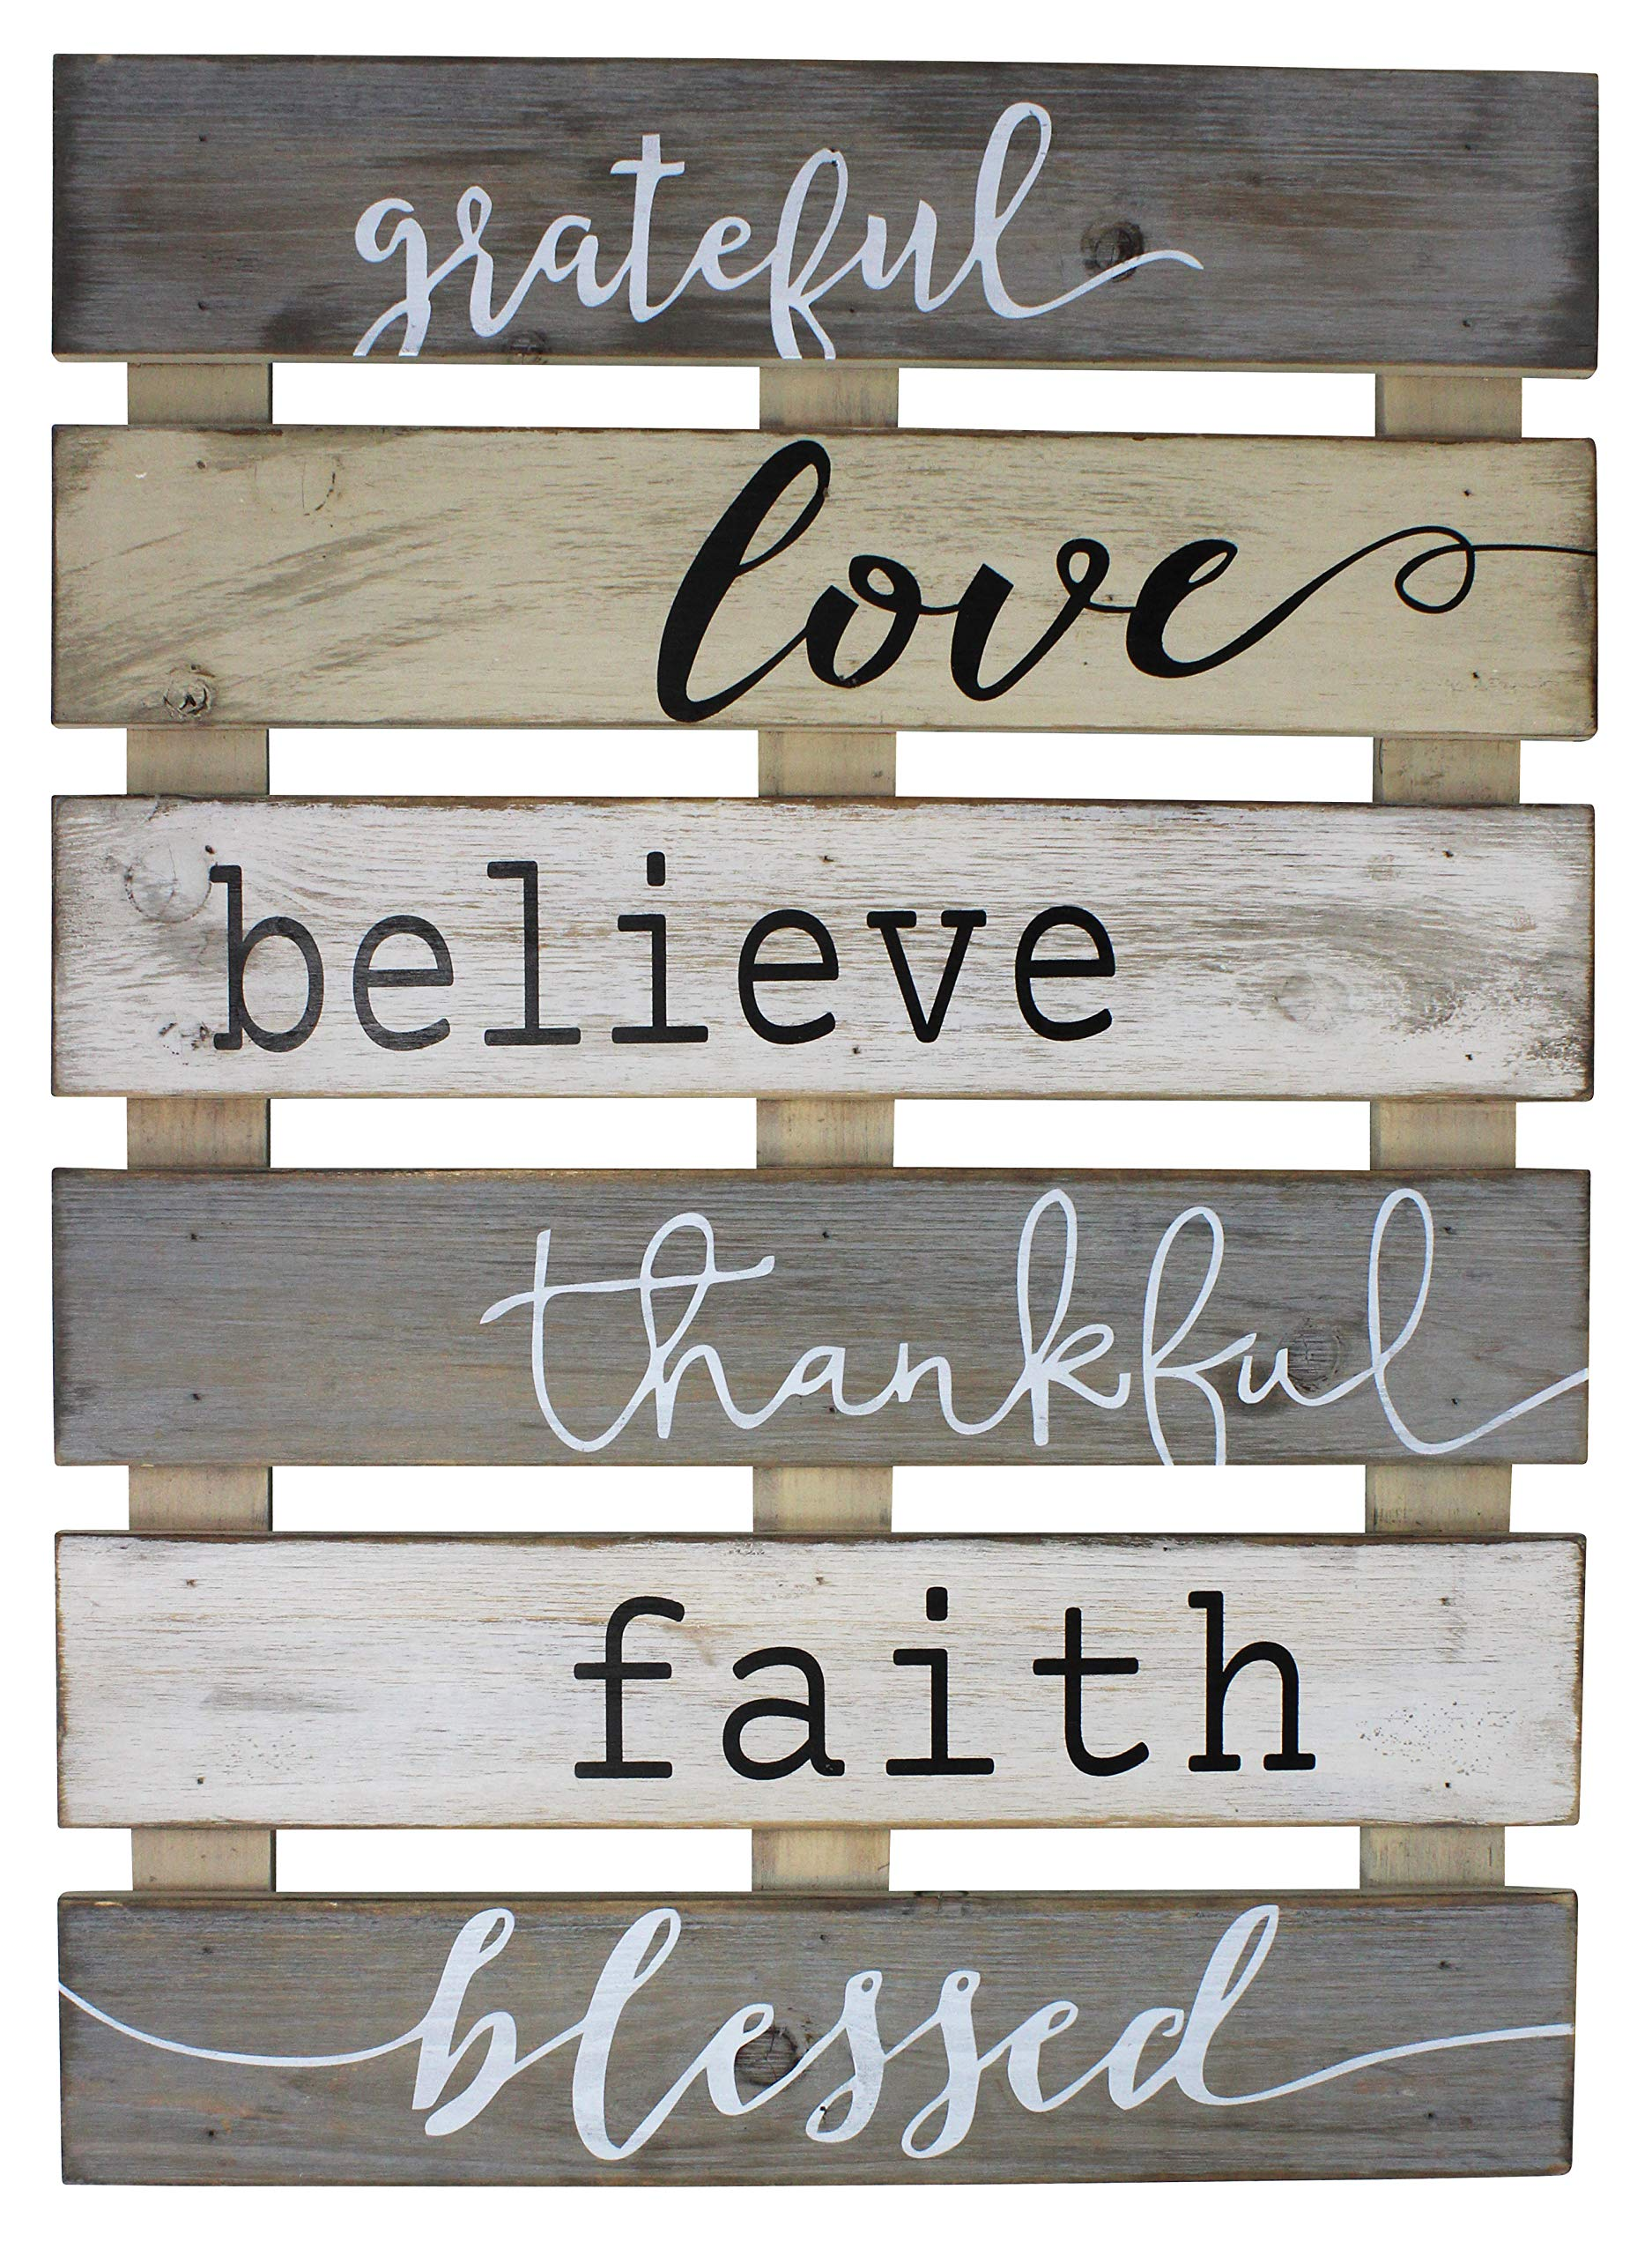 Vintage Rustic Wall Home Decor Sign for Kitchen, Living Room, Dining Room, Bedroom or Bathroom - Grateful Love Believe Thankful Faith Blessed Wood Pallet Skid Barnwood Color Decorative Wall Plaque